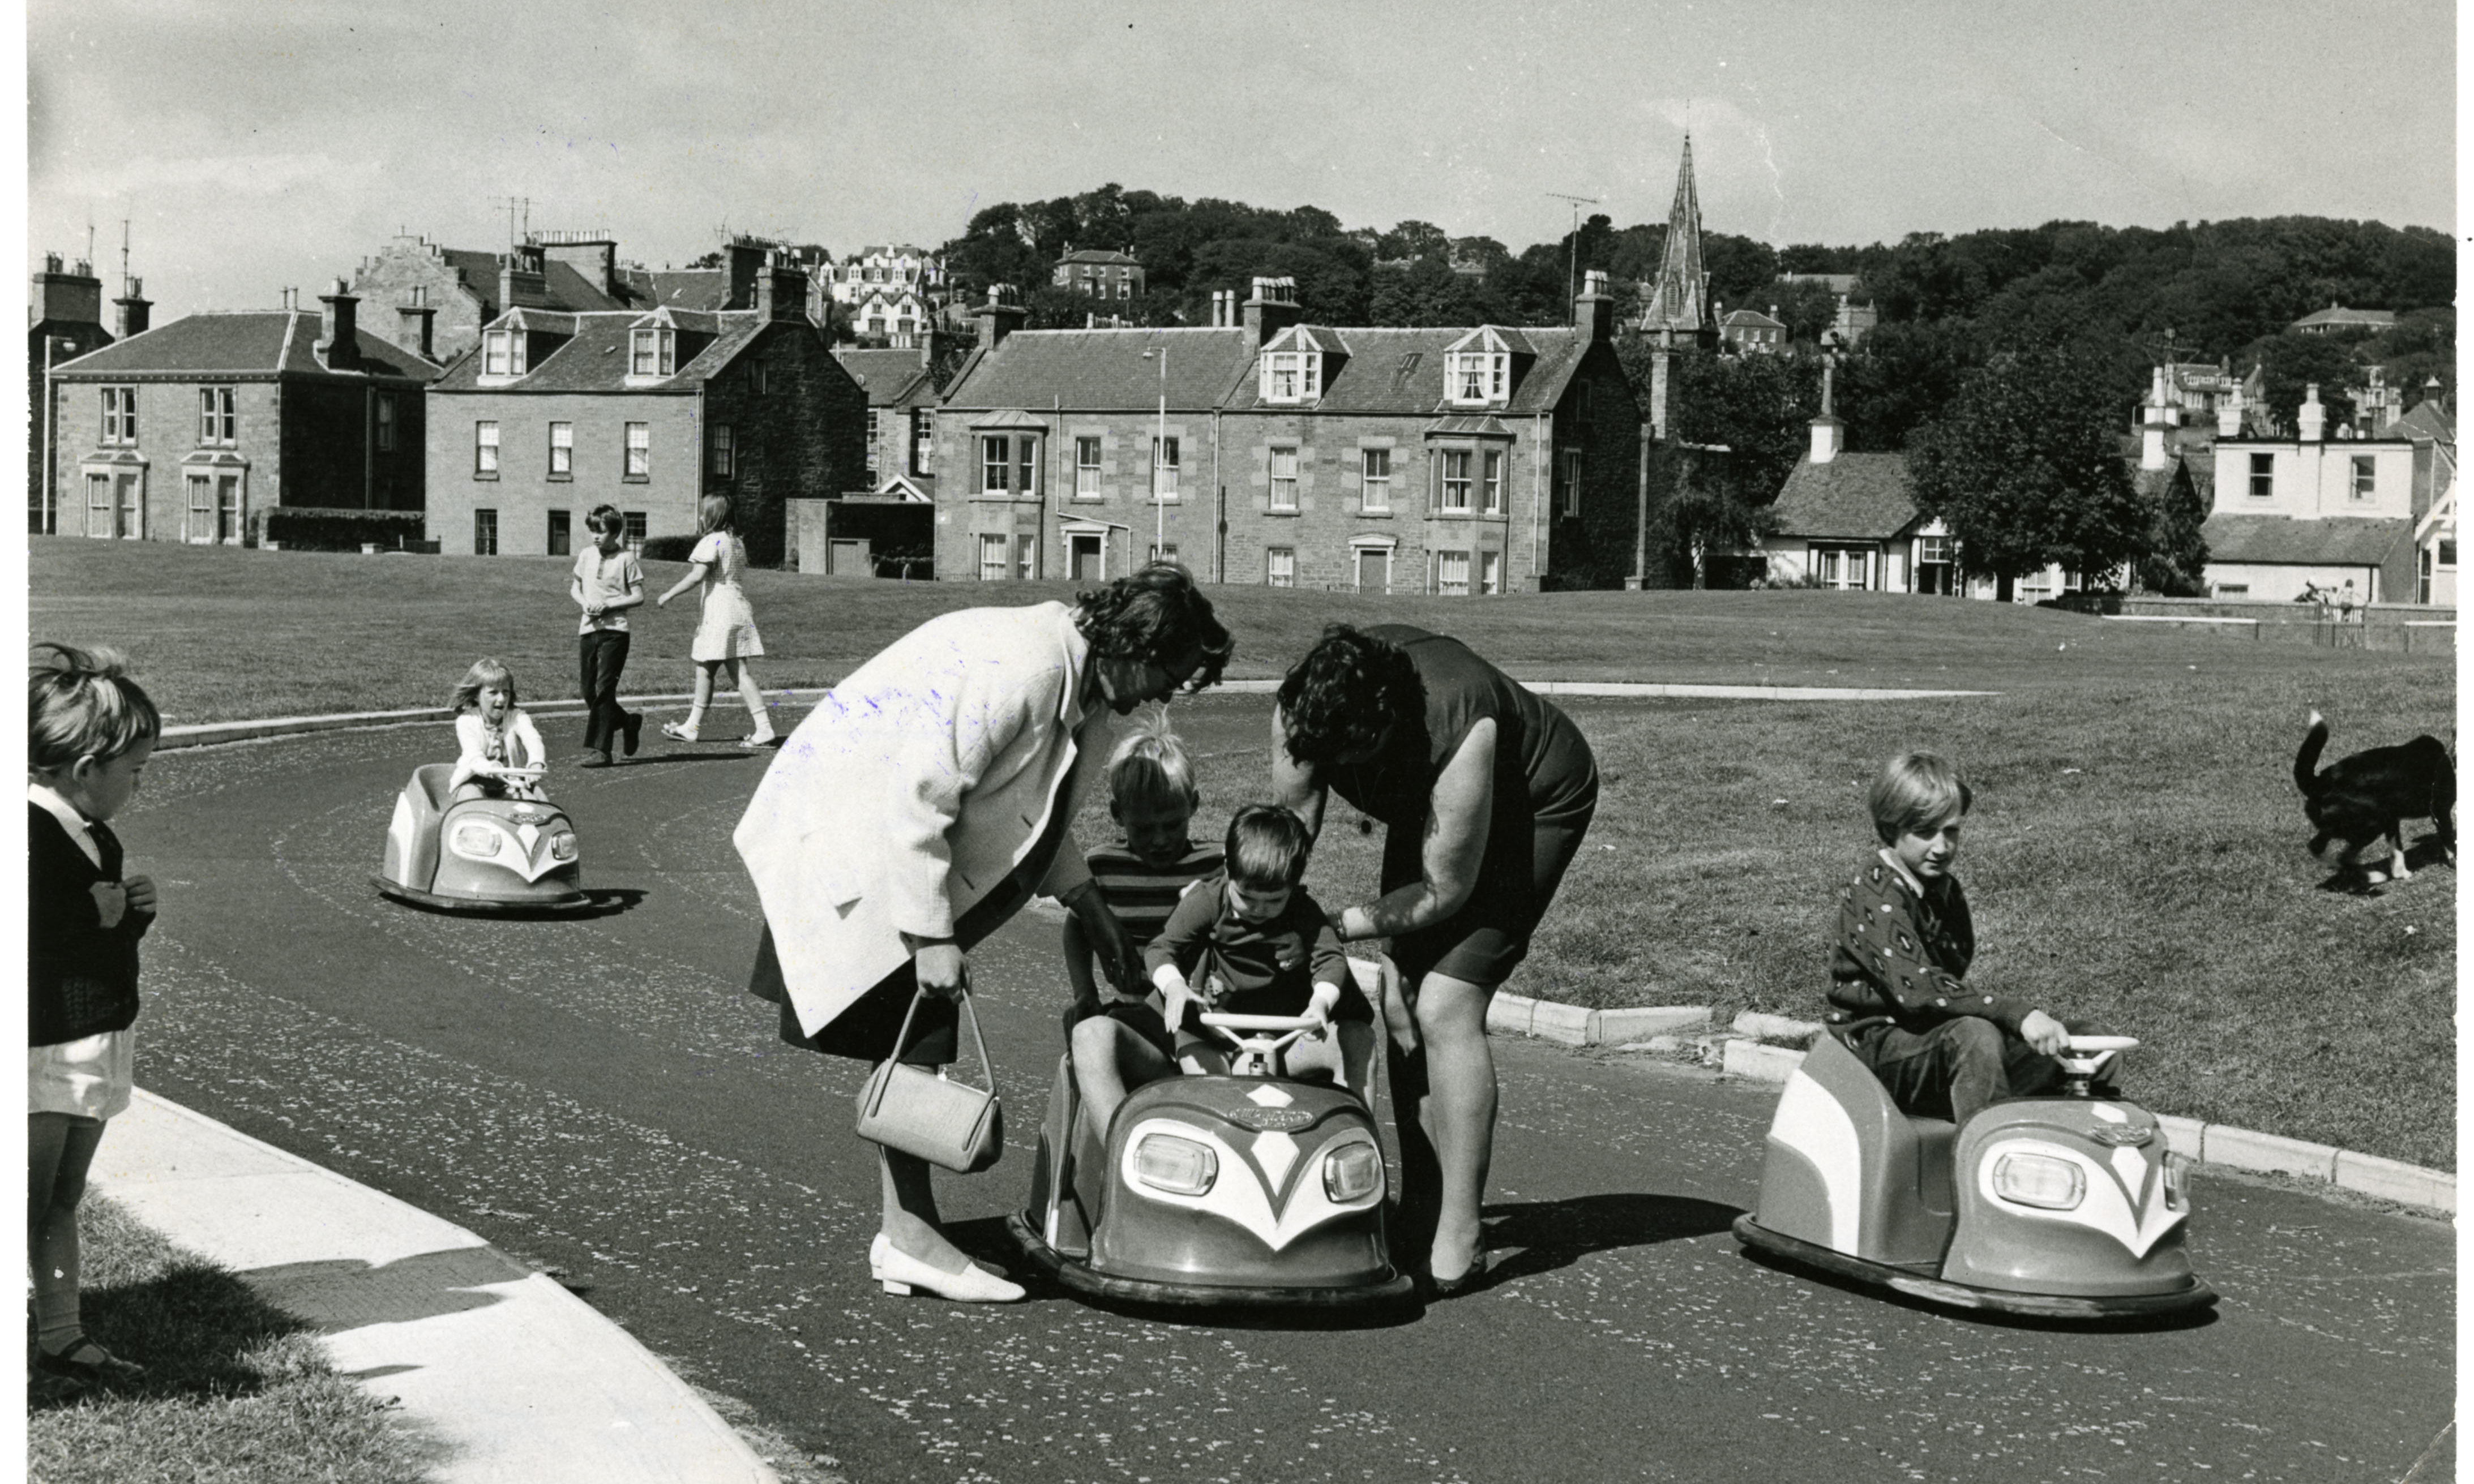 Children driving the electric cars around the race track at Castle Green, Broughty Ferry, while two women help one of the kids into one of the cars. The picture was taken on August 21 1972.